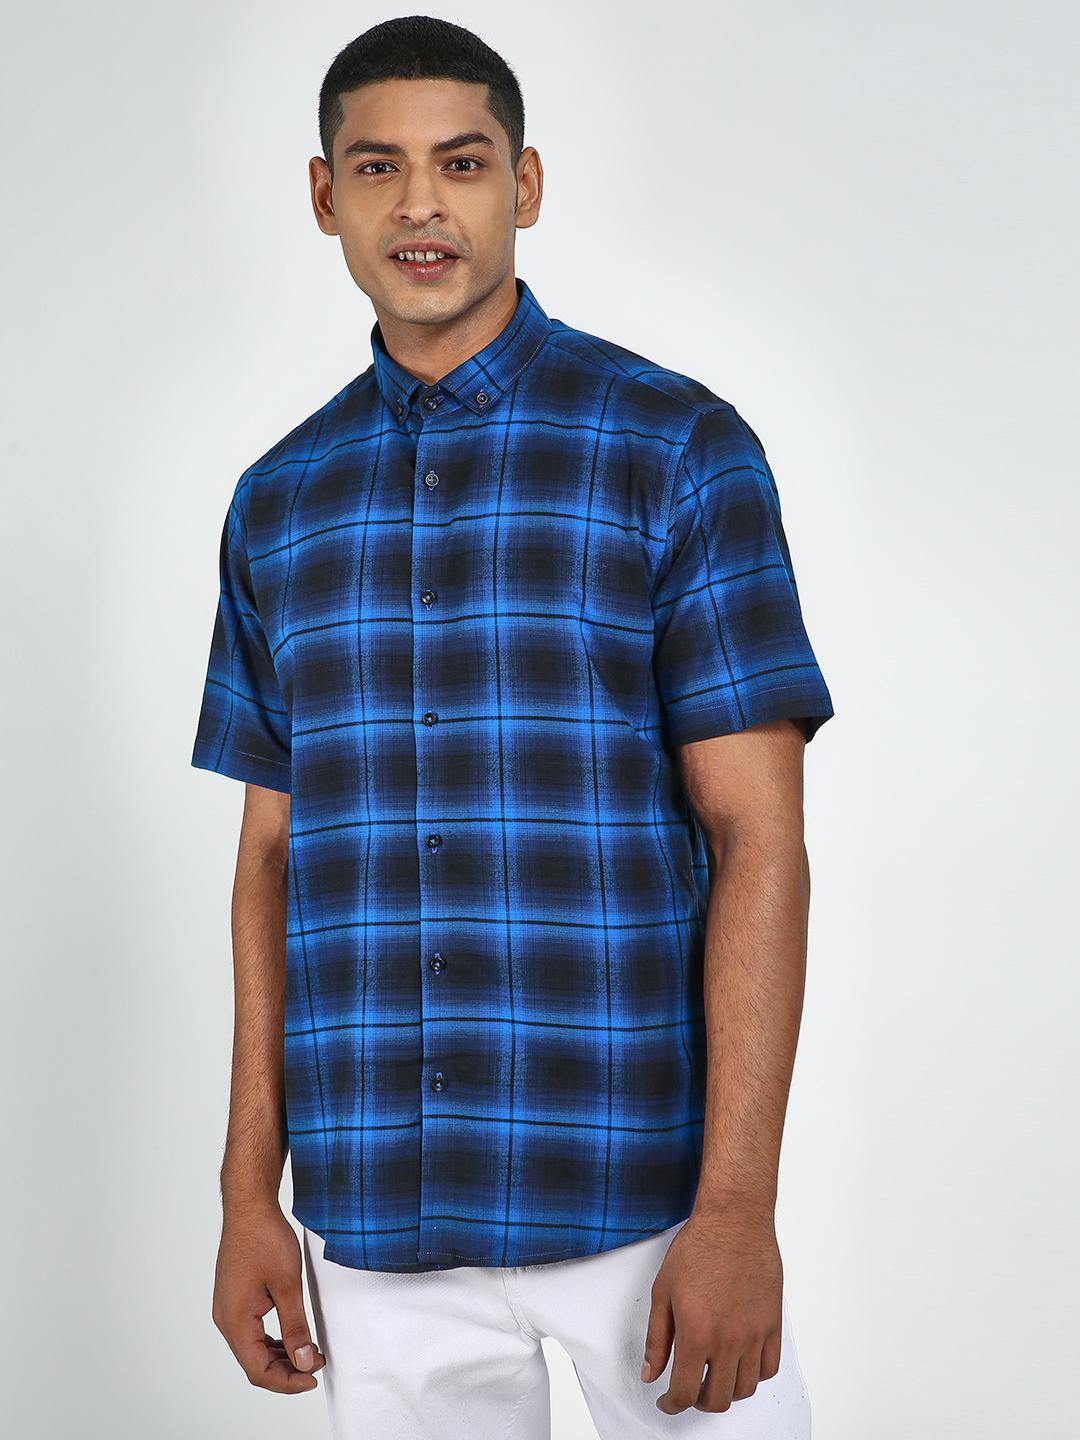 Green Hill Blue Men's Slim Fit Chequered Shirt 1